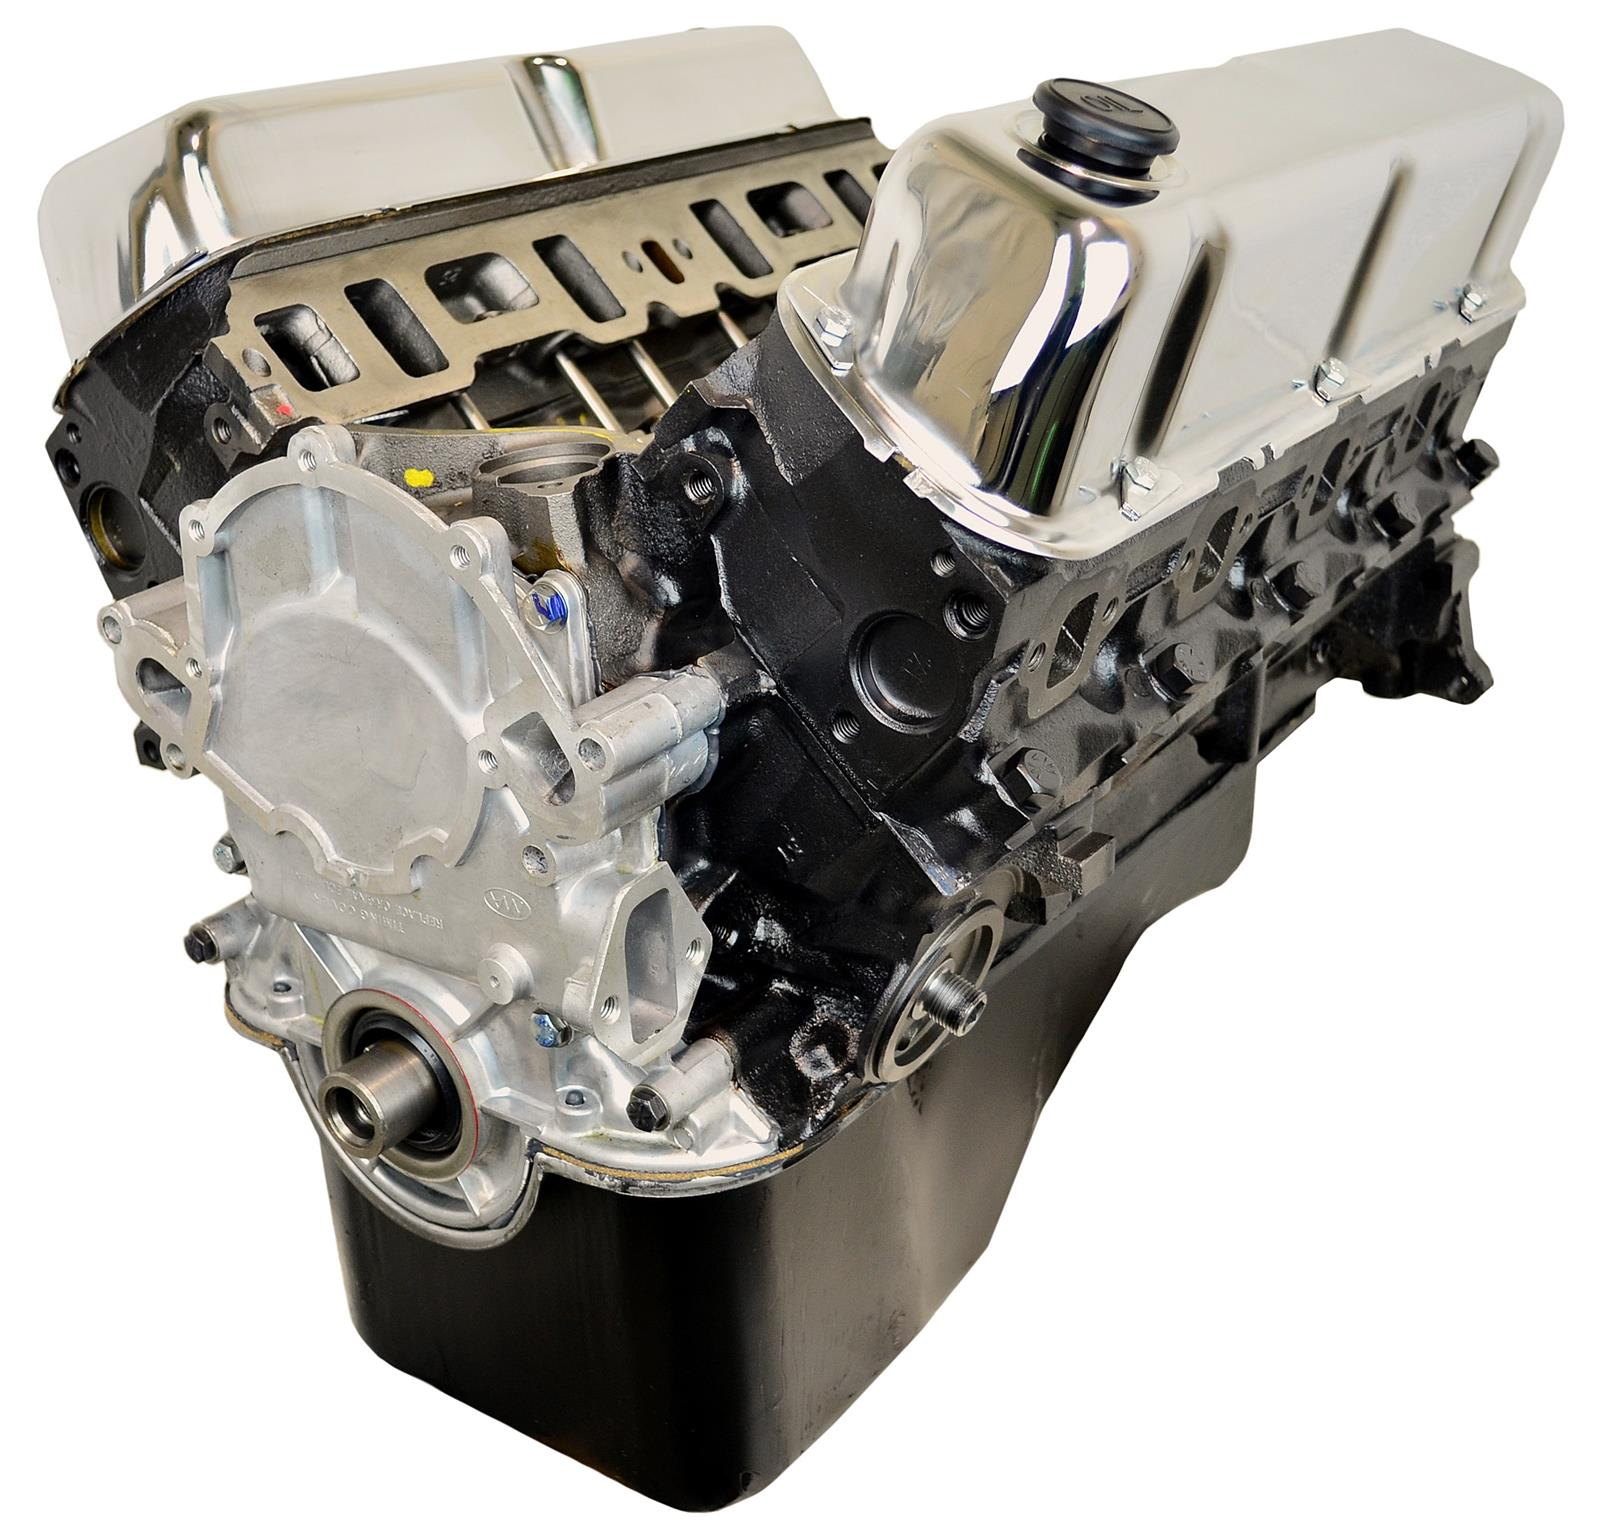 ATK High Performance Ford 351W 300 HP Stage 1 Long Block Crate Engines HP09